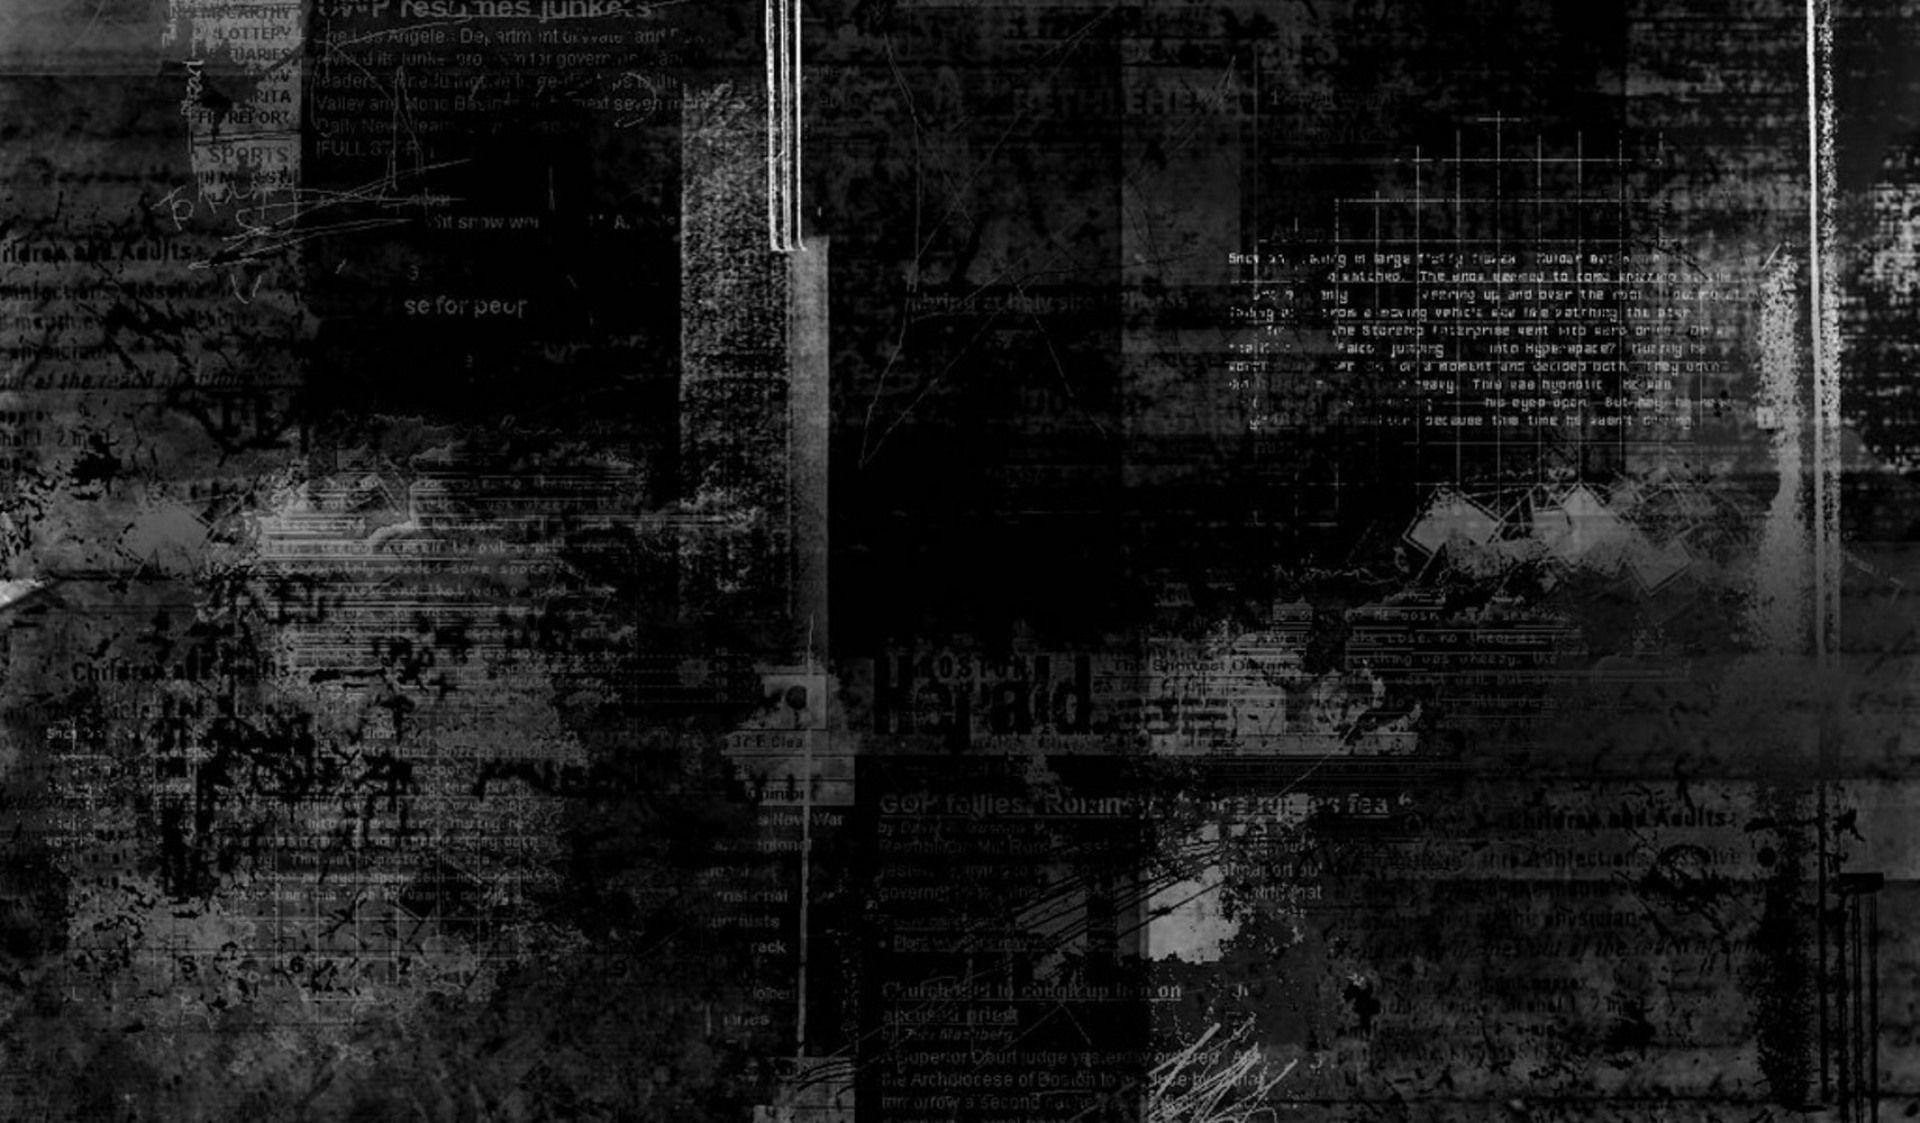 Hd Dark Abstract Wallpapers Hq Background 15 HD Wallpapers | Hdimges.